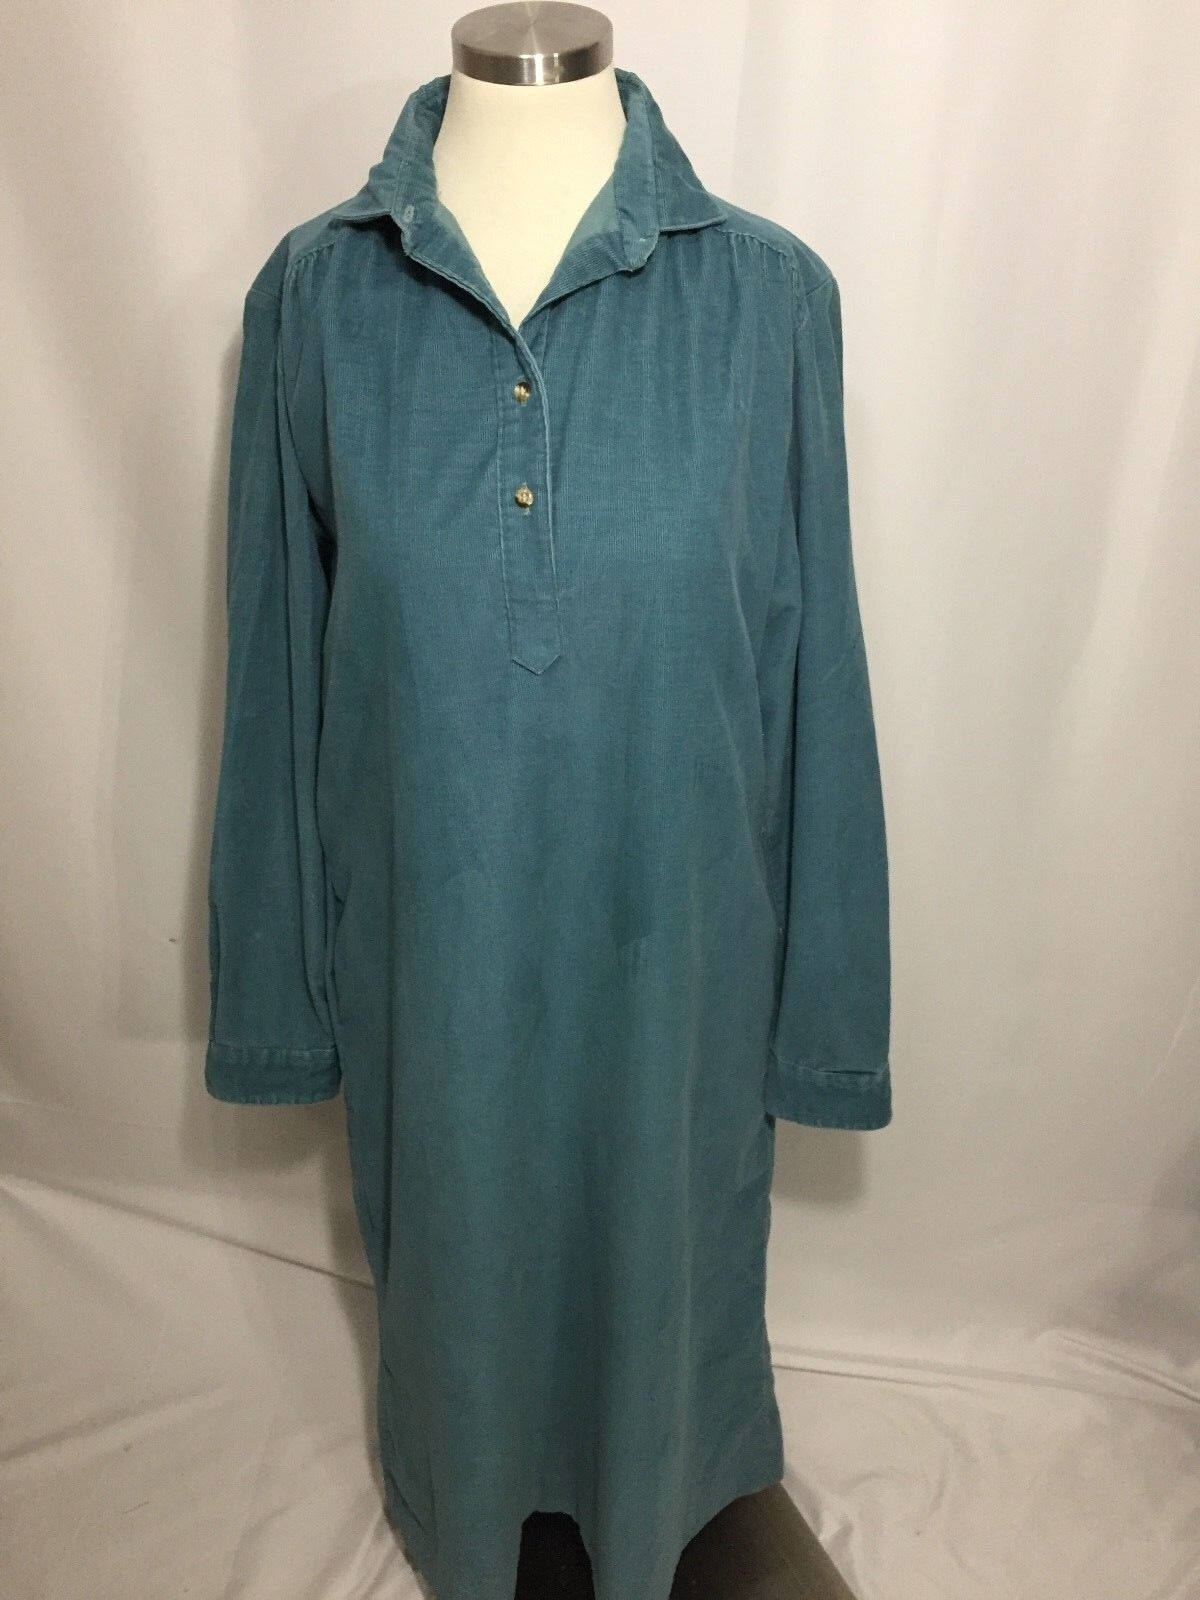 L.L. Bean Teal bluee Corduroy Henley Dress Long Sleeve 14 Excellent VTG RARE